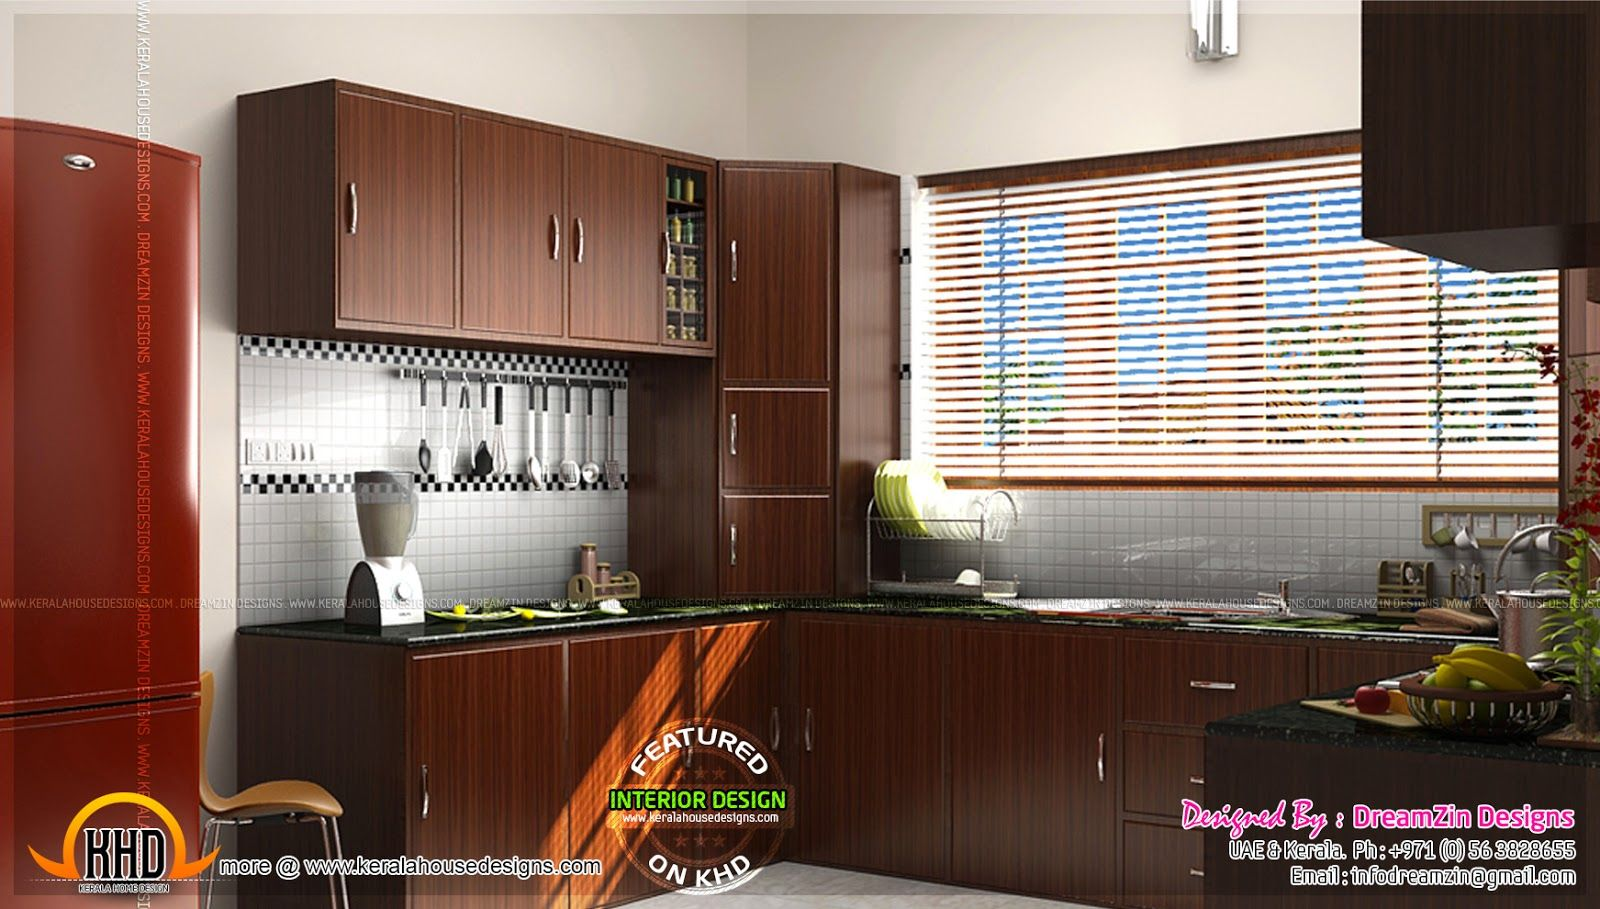 Kerala Kitchen Interior Design Modular Designs Contact House